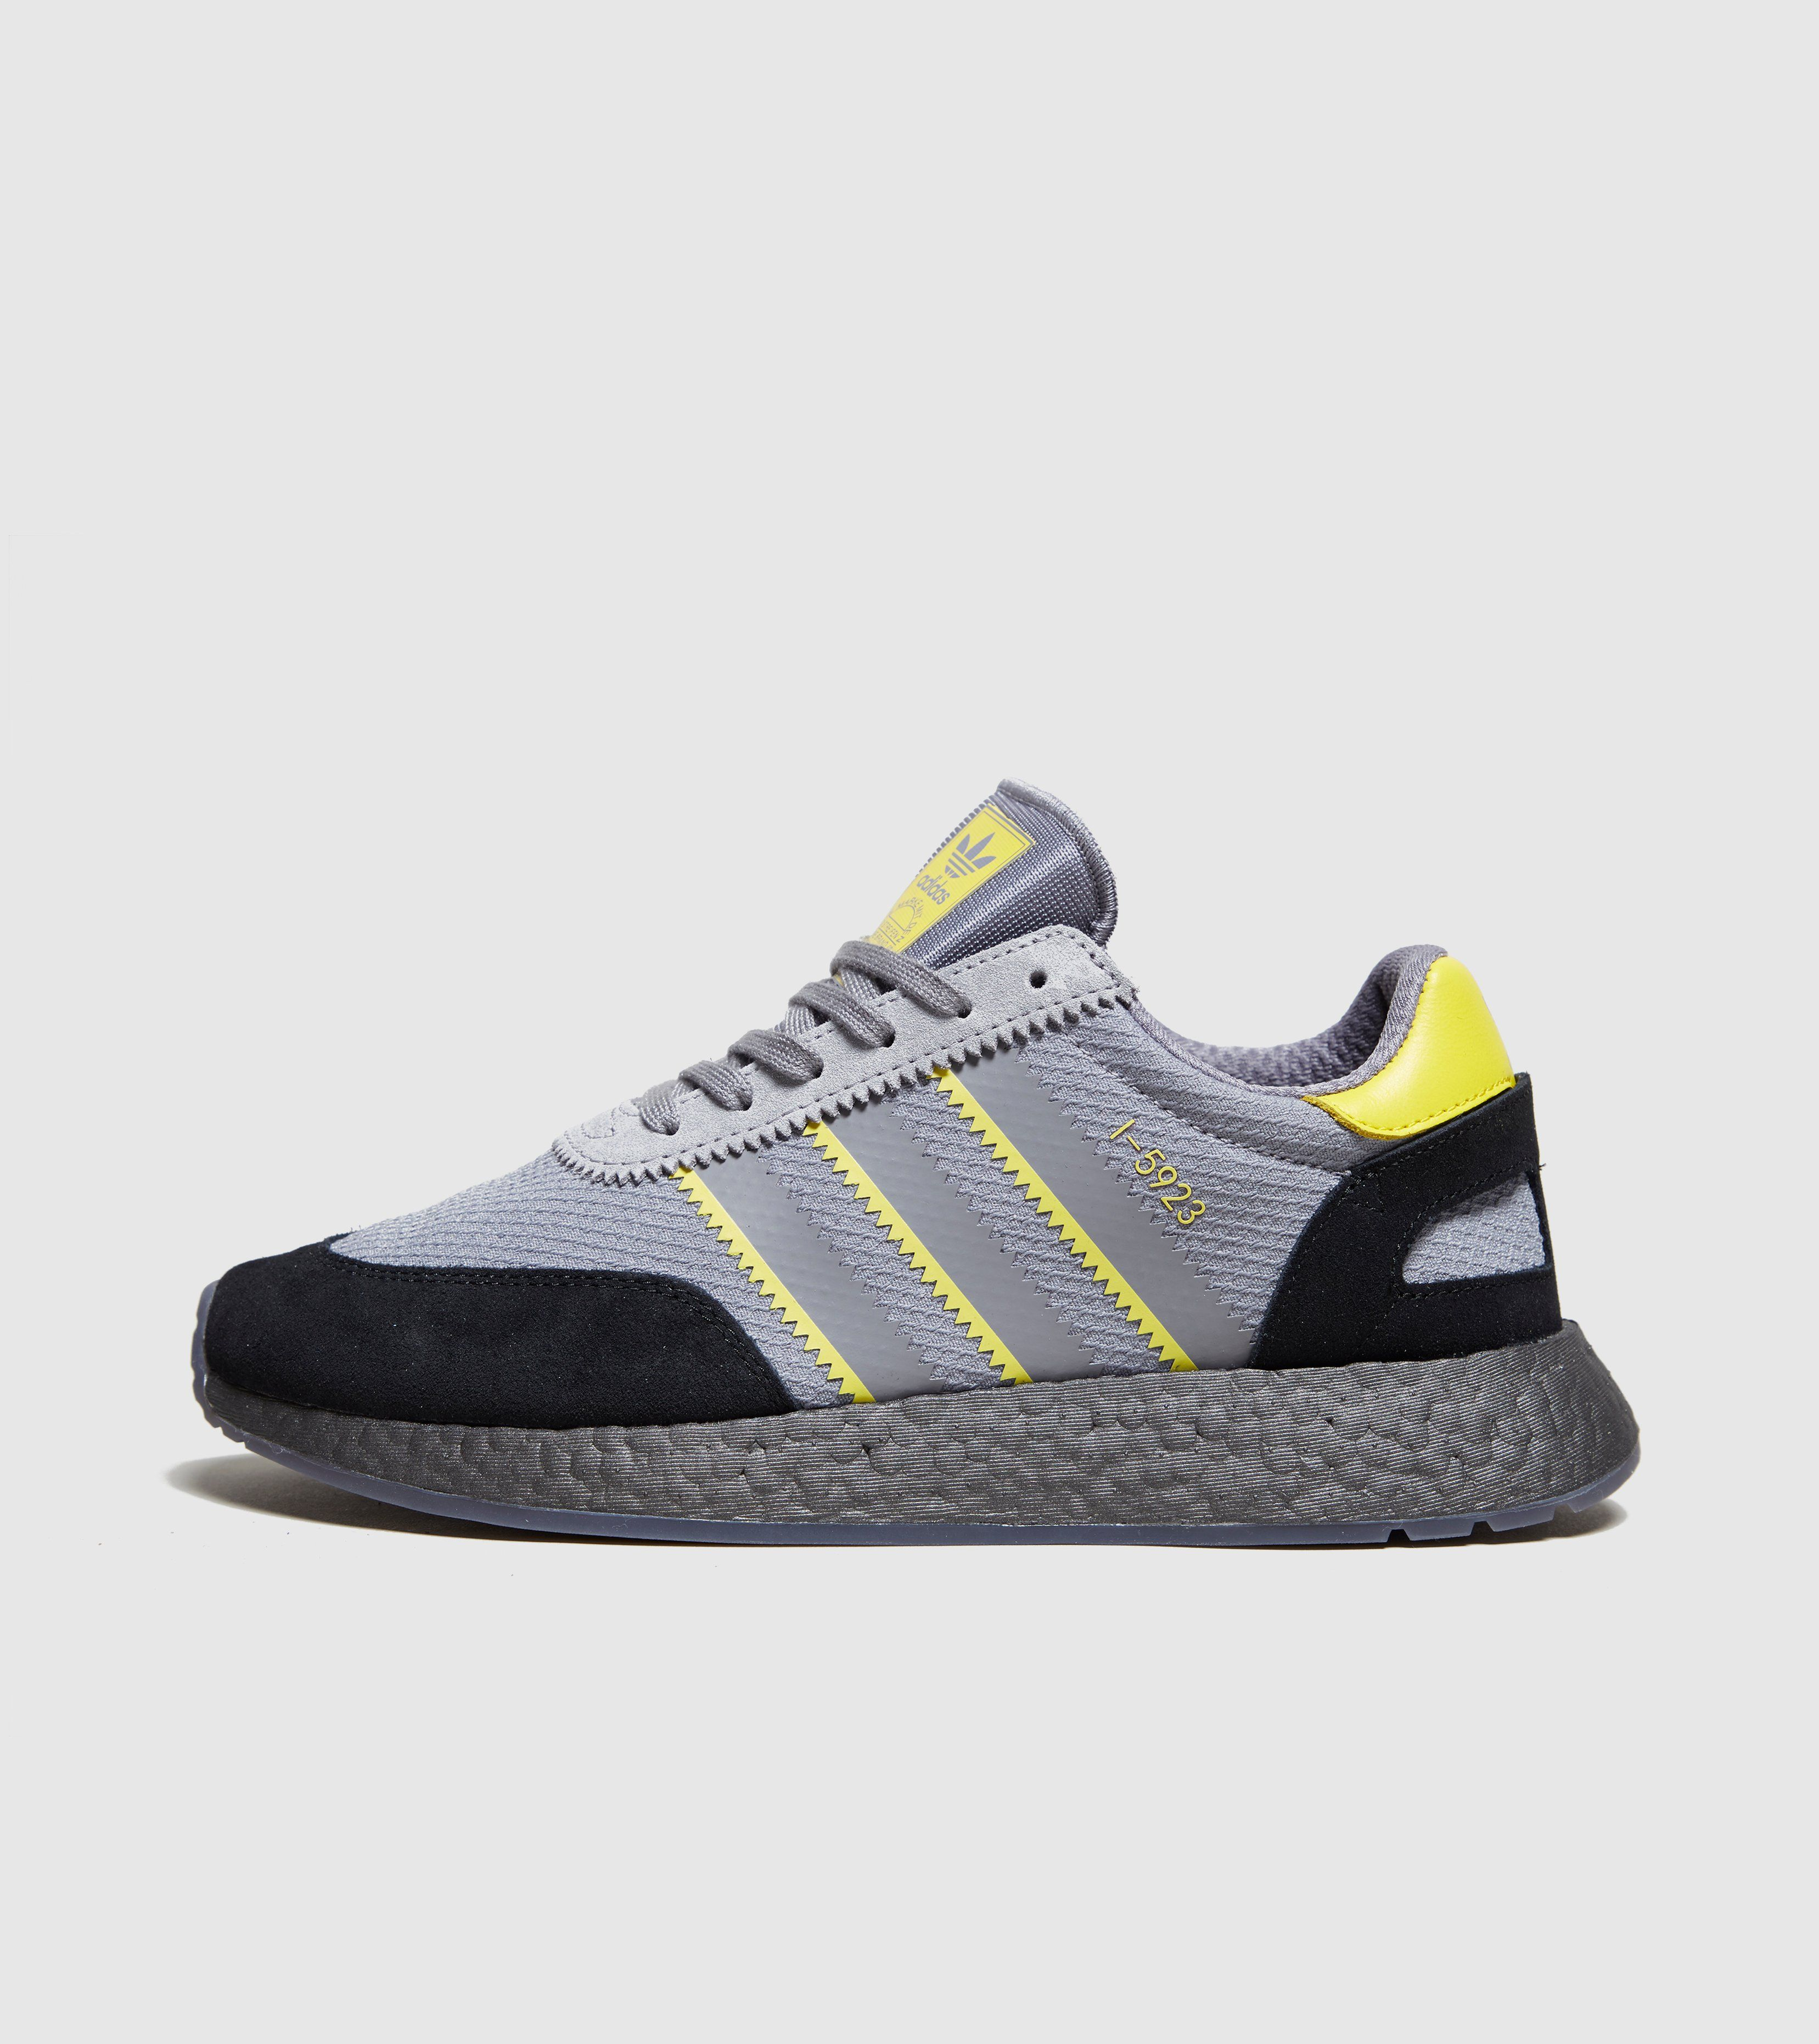 adidas Originals I-5923 \'Manchester Showers\' - size? Exclusive | Size?